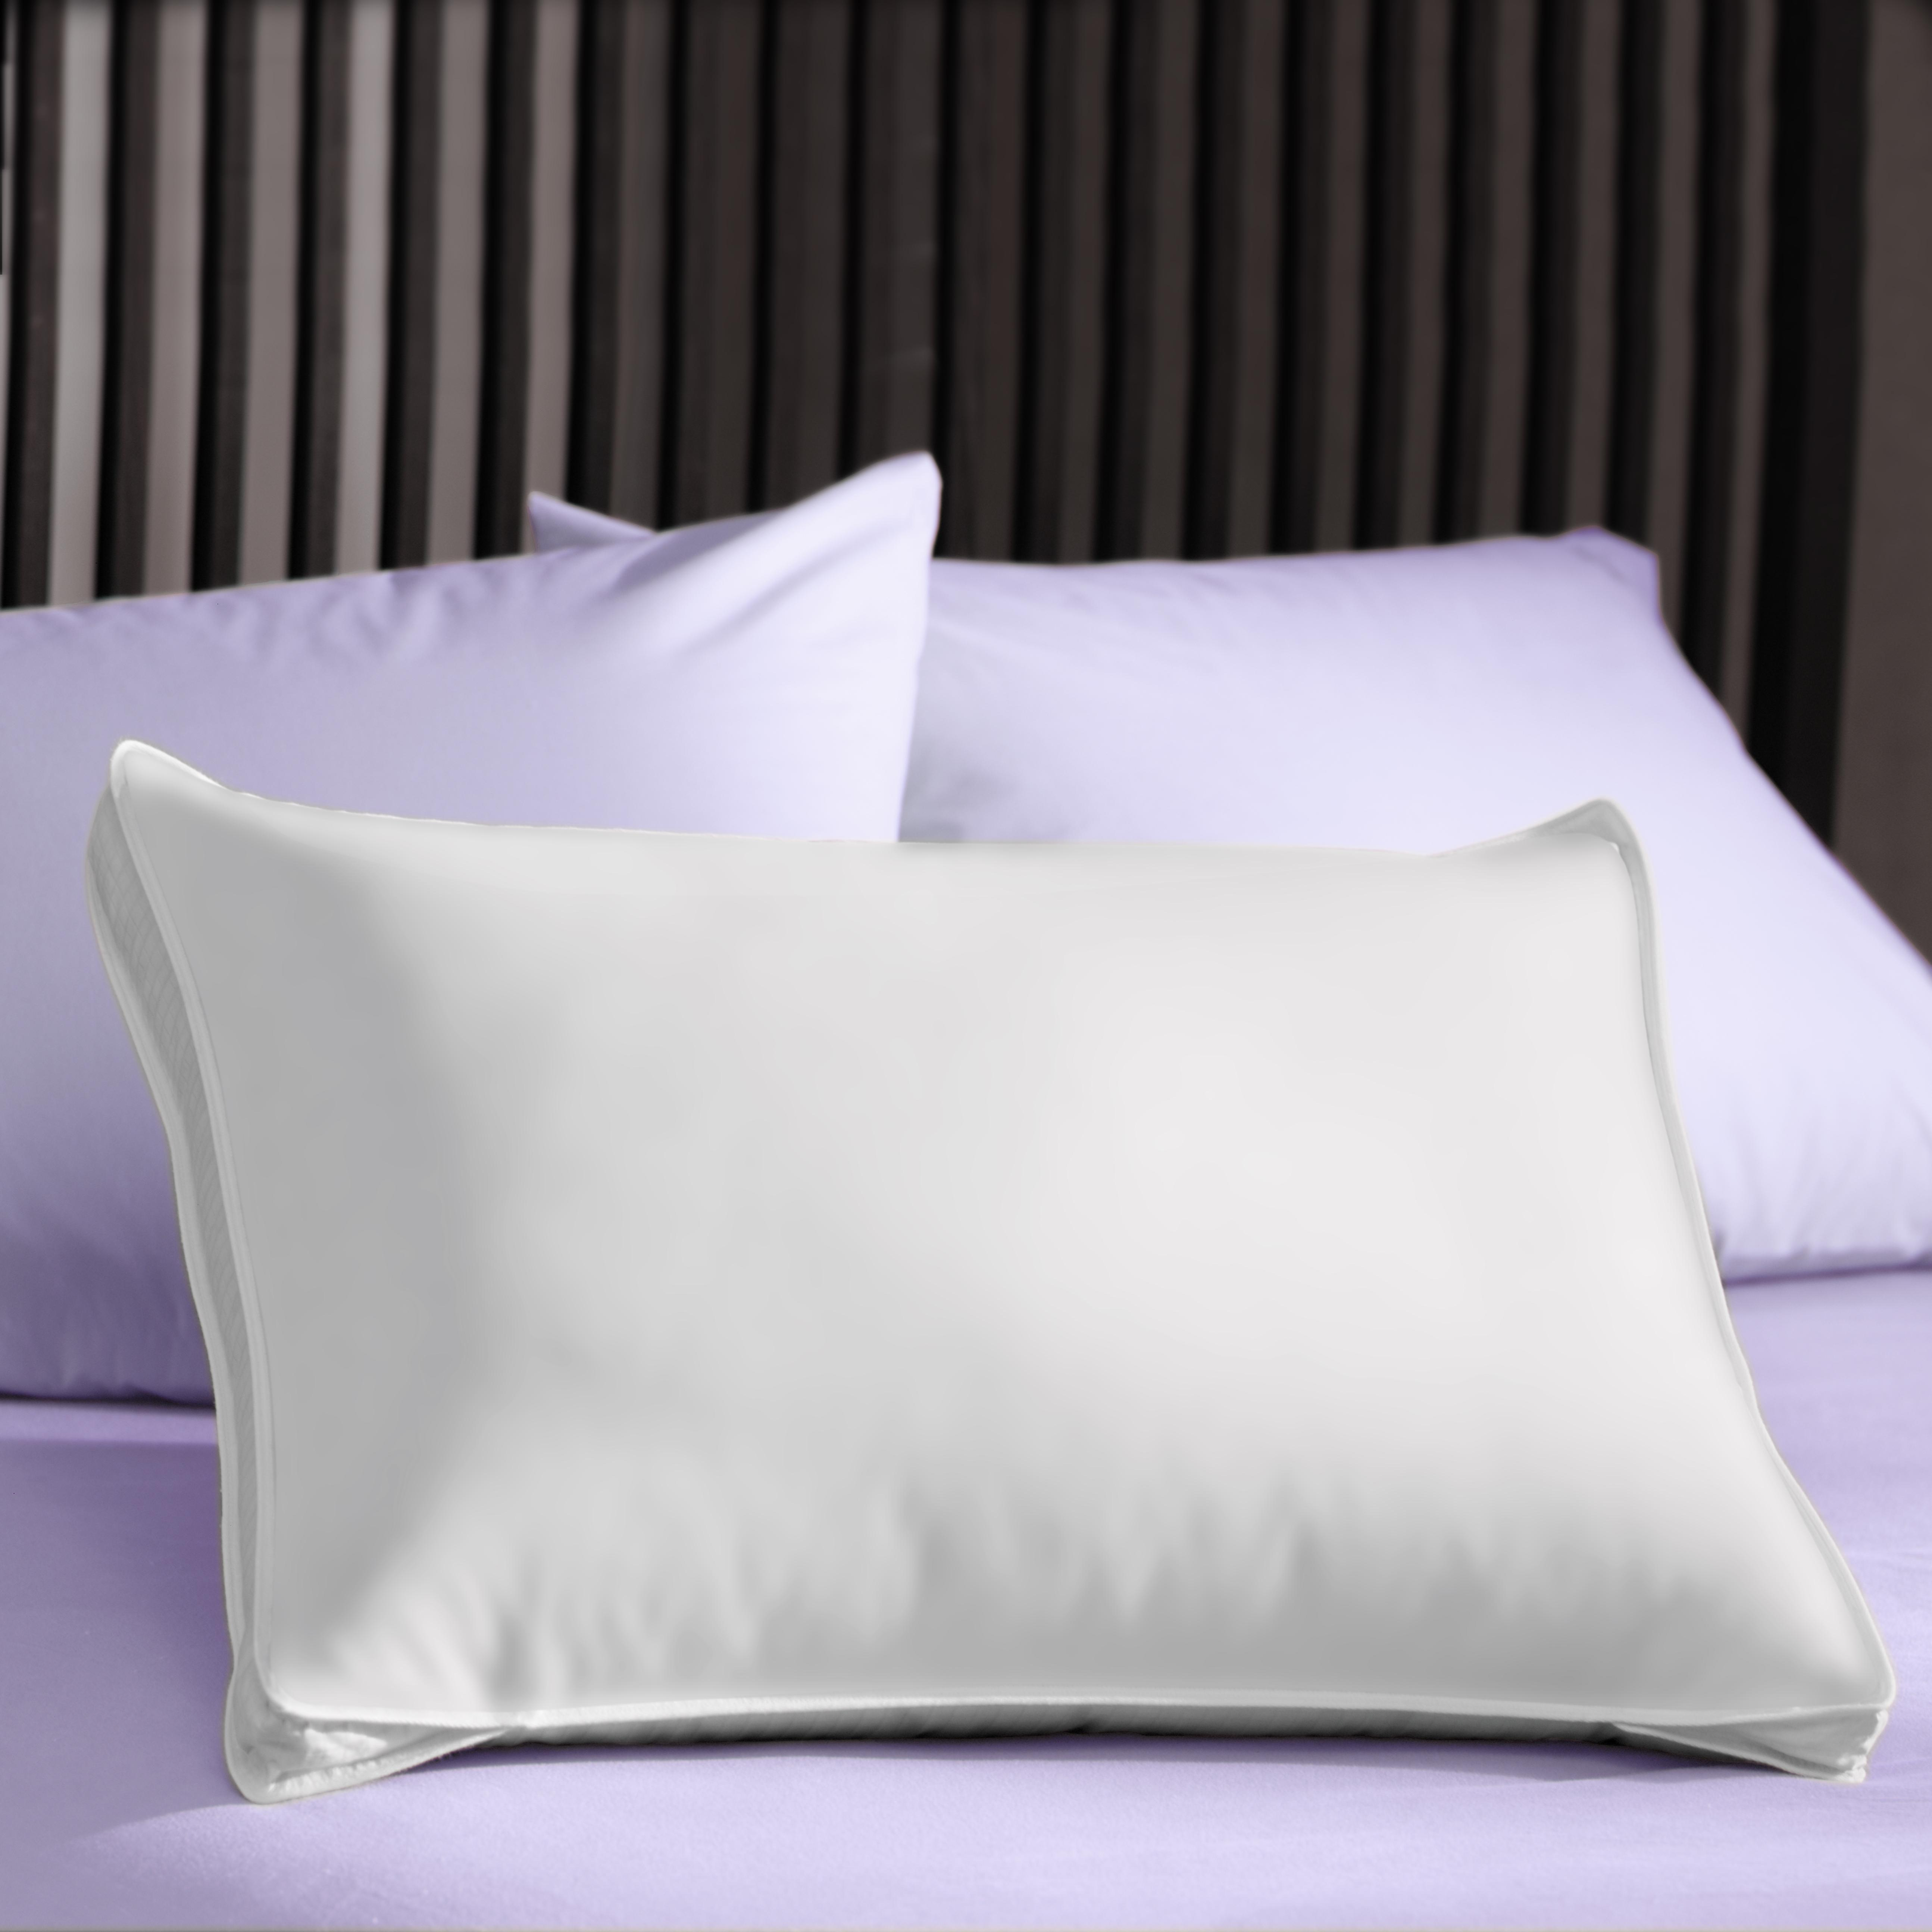 Extra Firm 3-inch Gusset Natural Pillows (Set of 2)